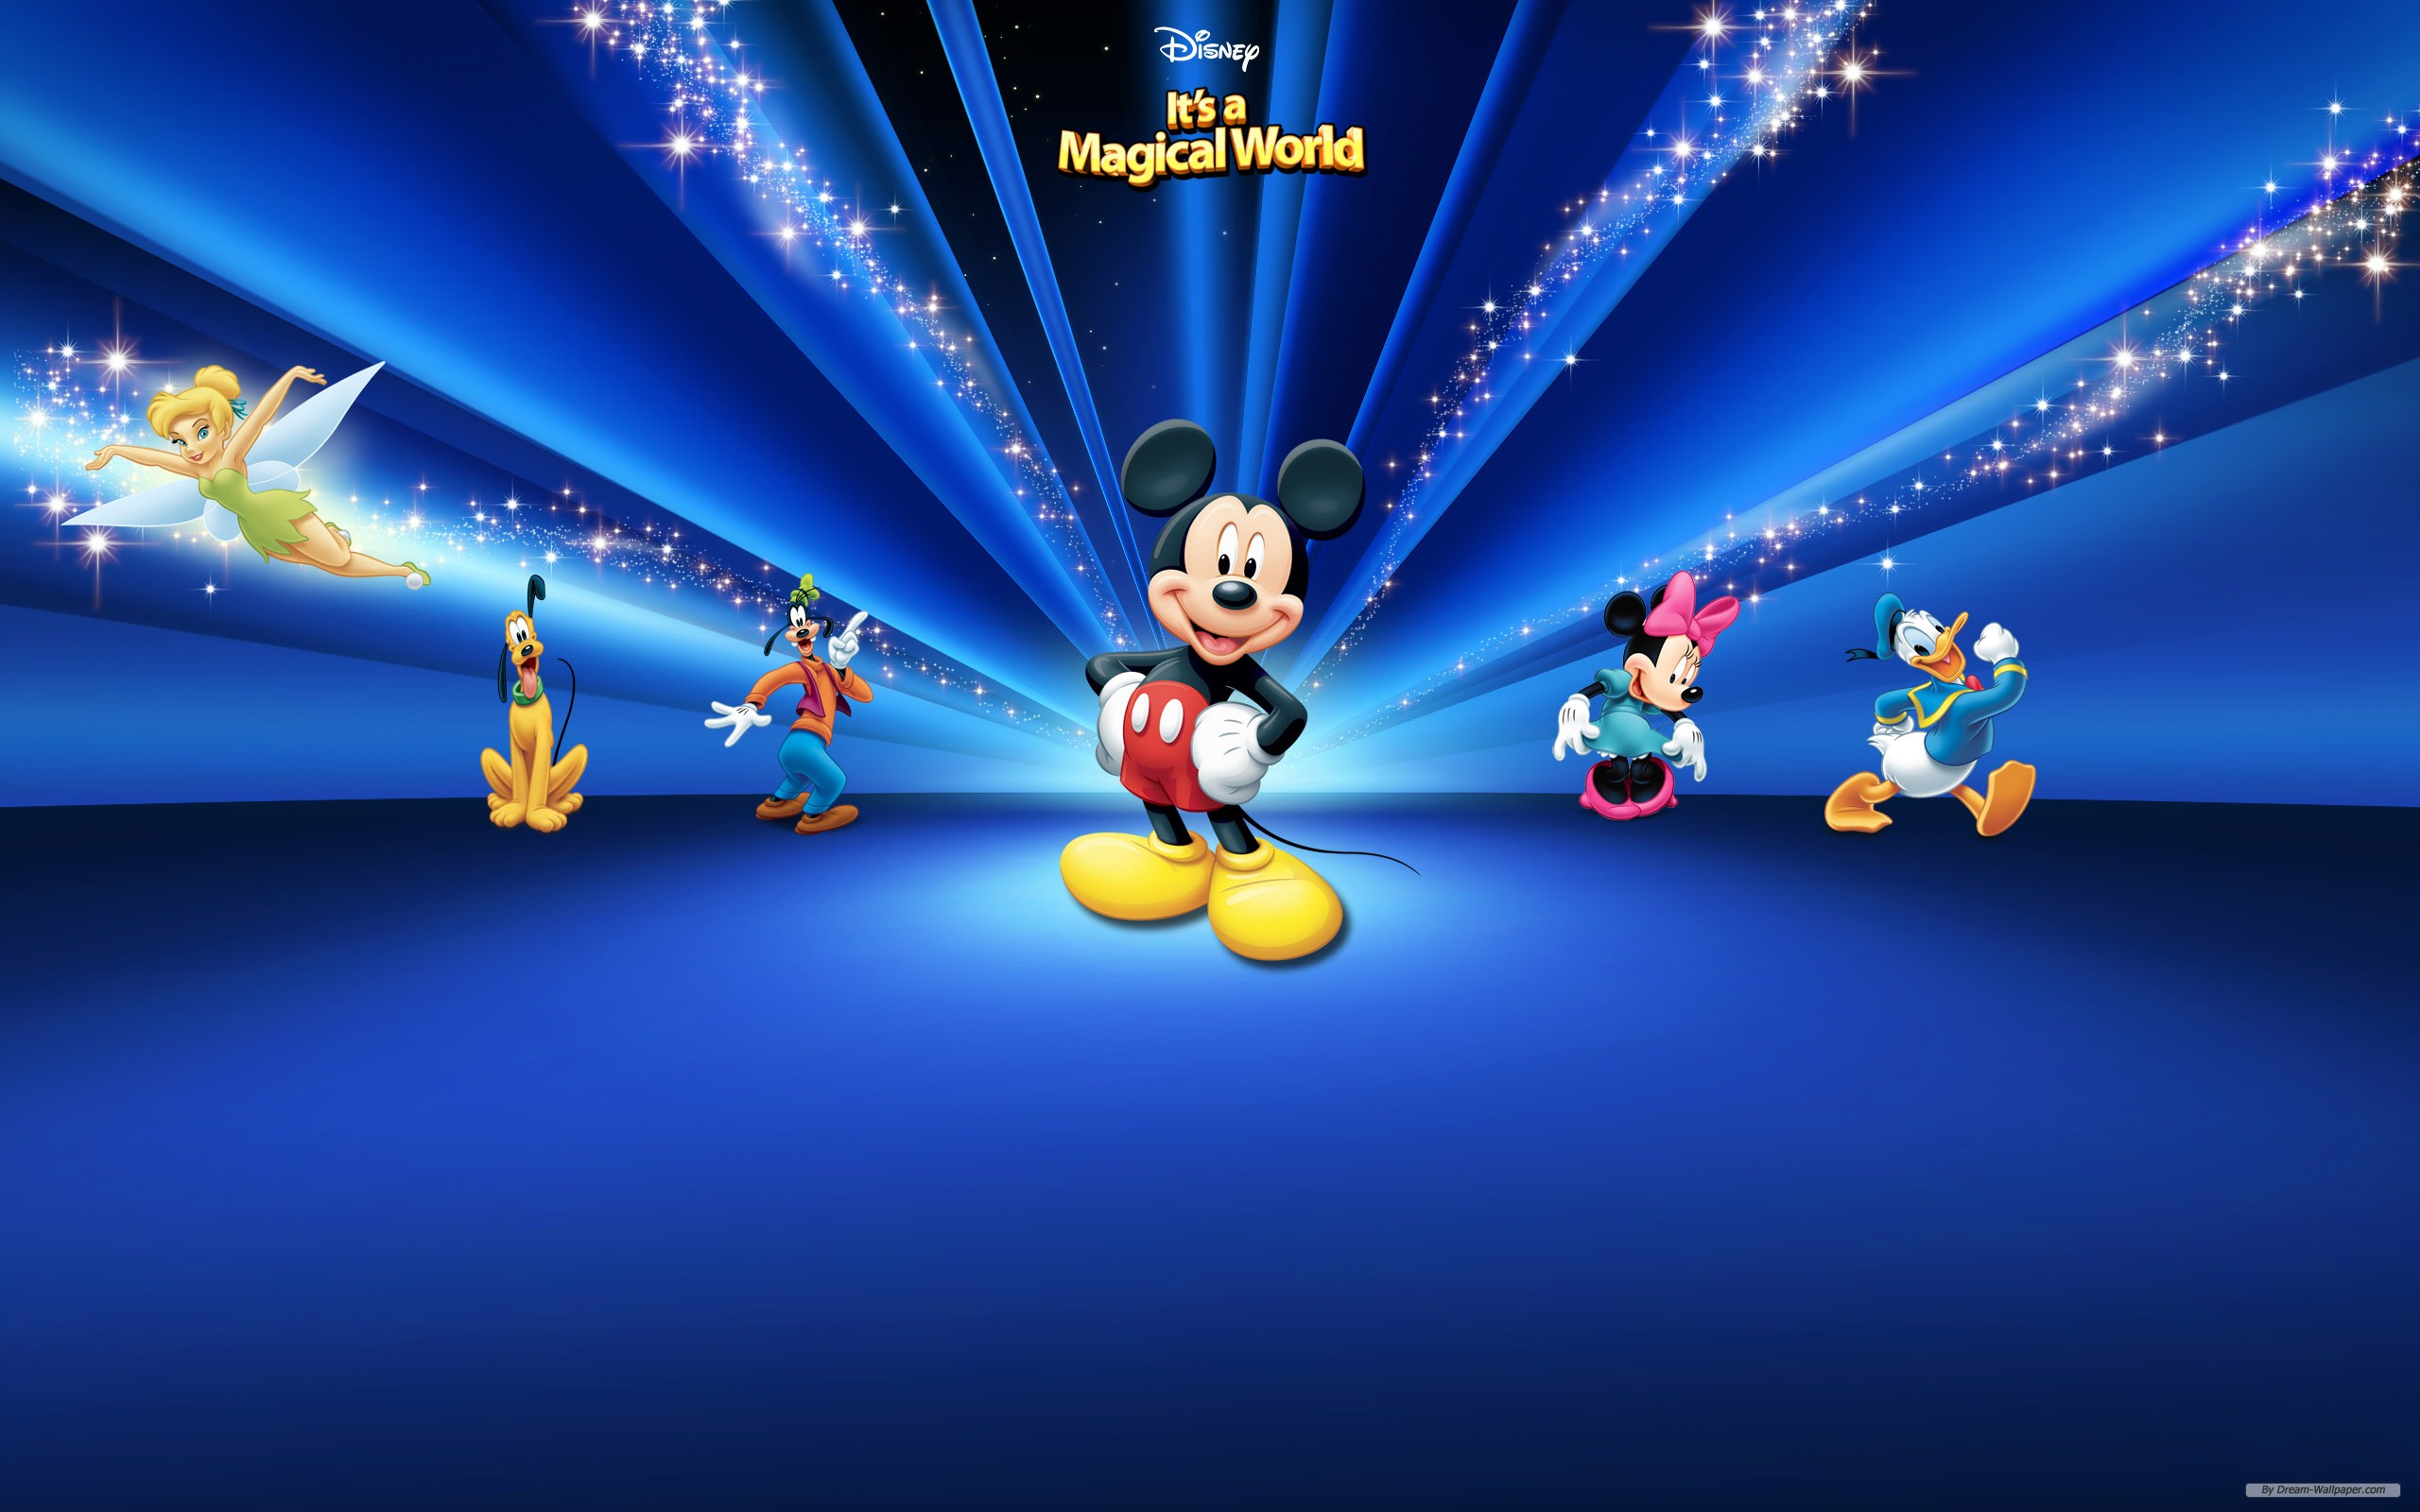 wallpaperdisney theme 1 wallpaper2560x1600free wallpaper 9html 2560x1600